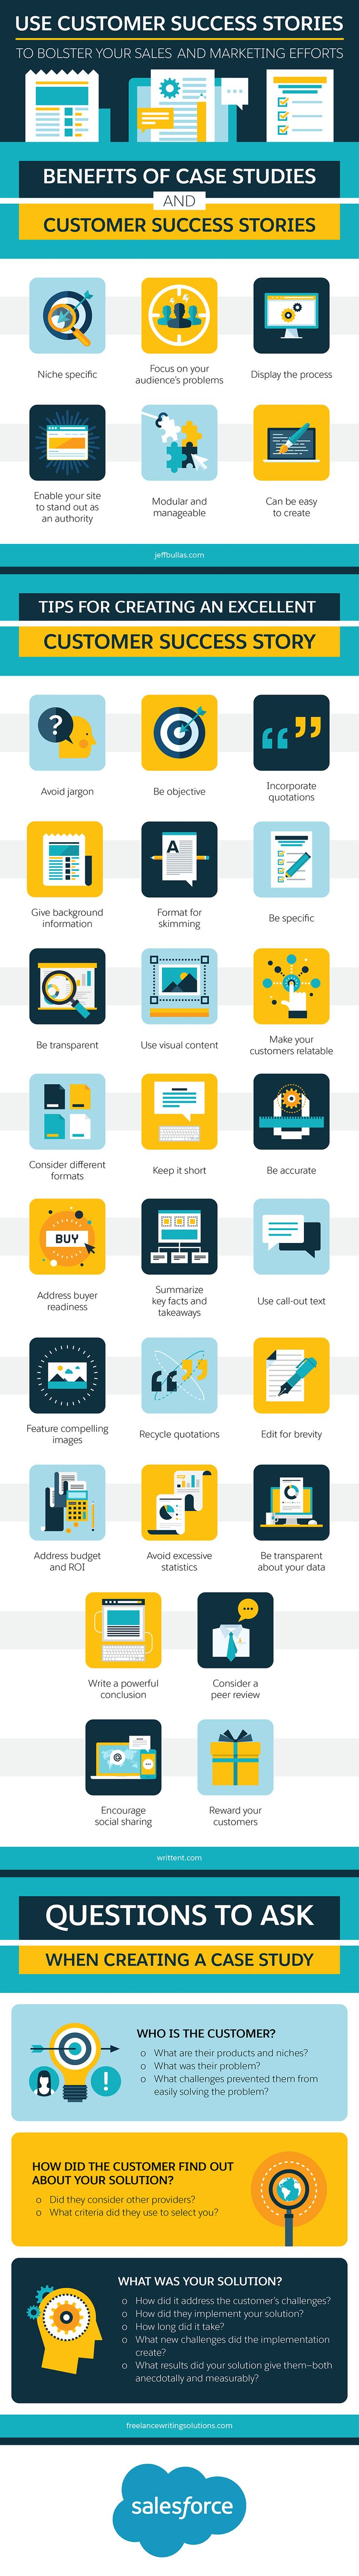 Use Customer Success Stories to Bolster your Sales and Marketing Efforts #Infographic #Marketing #Sales